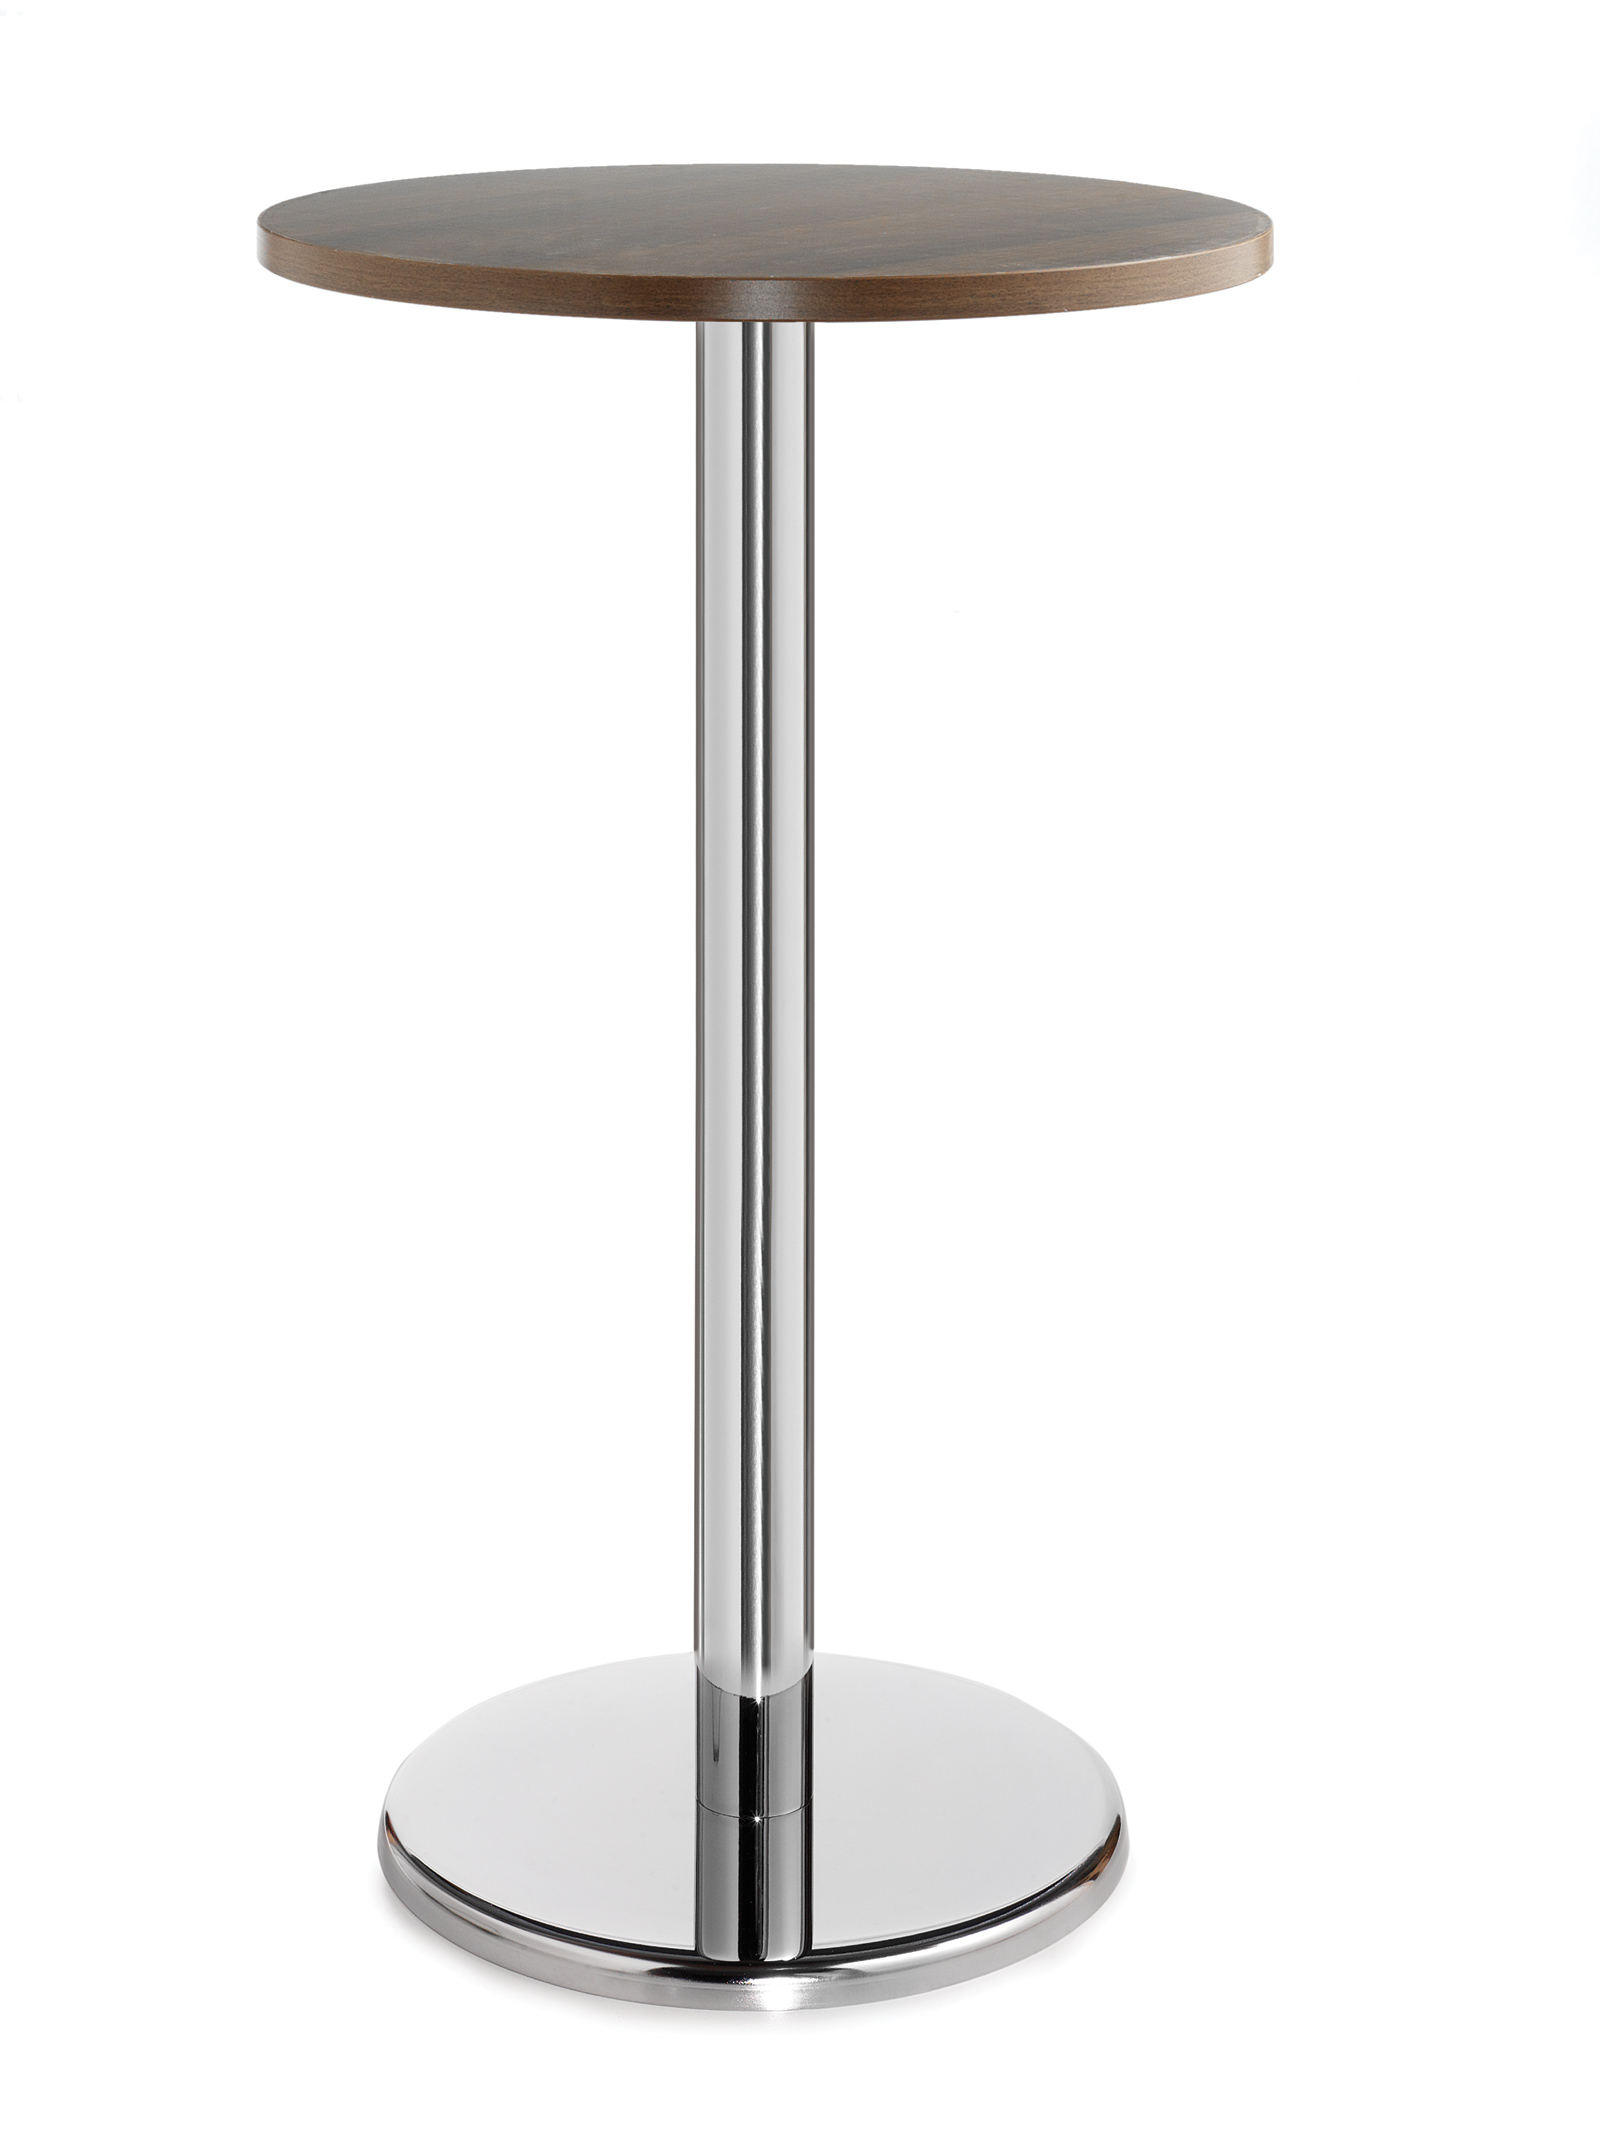 Pisa circular poseur table with round chrome base 800mm - walnut